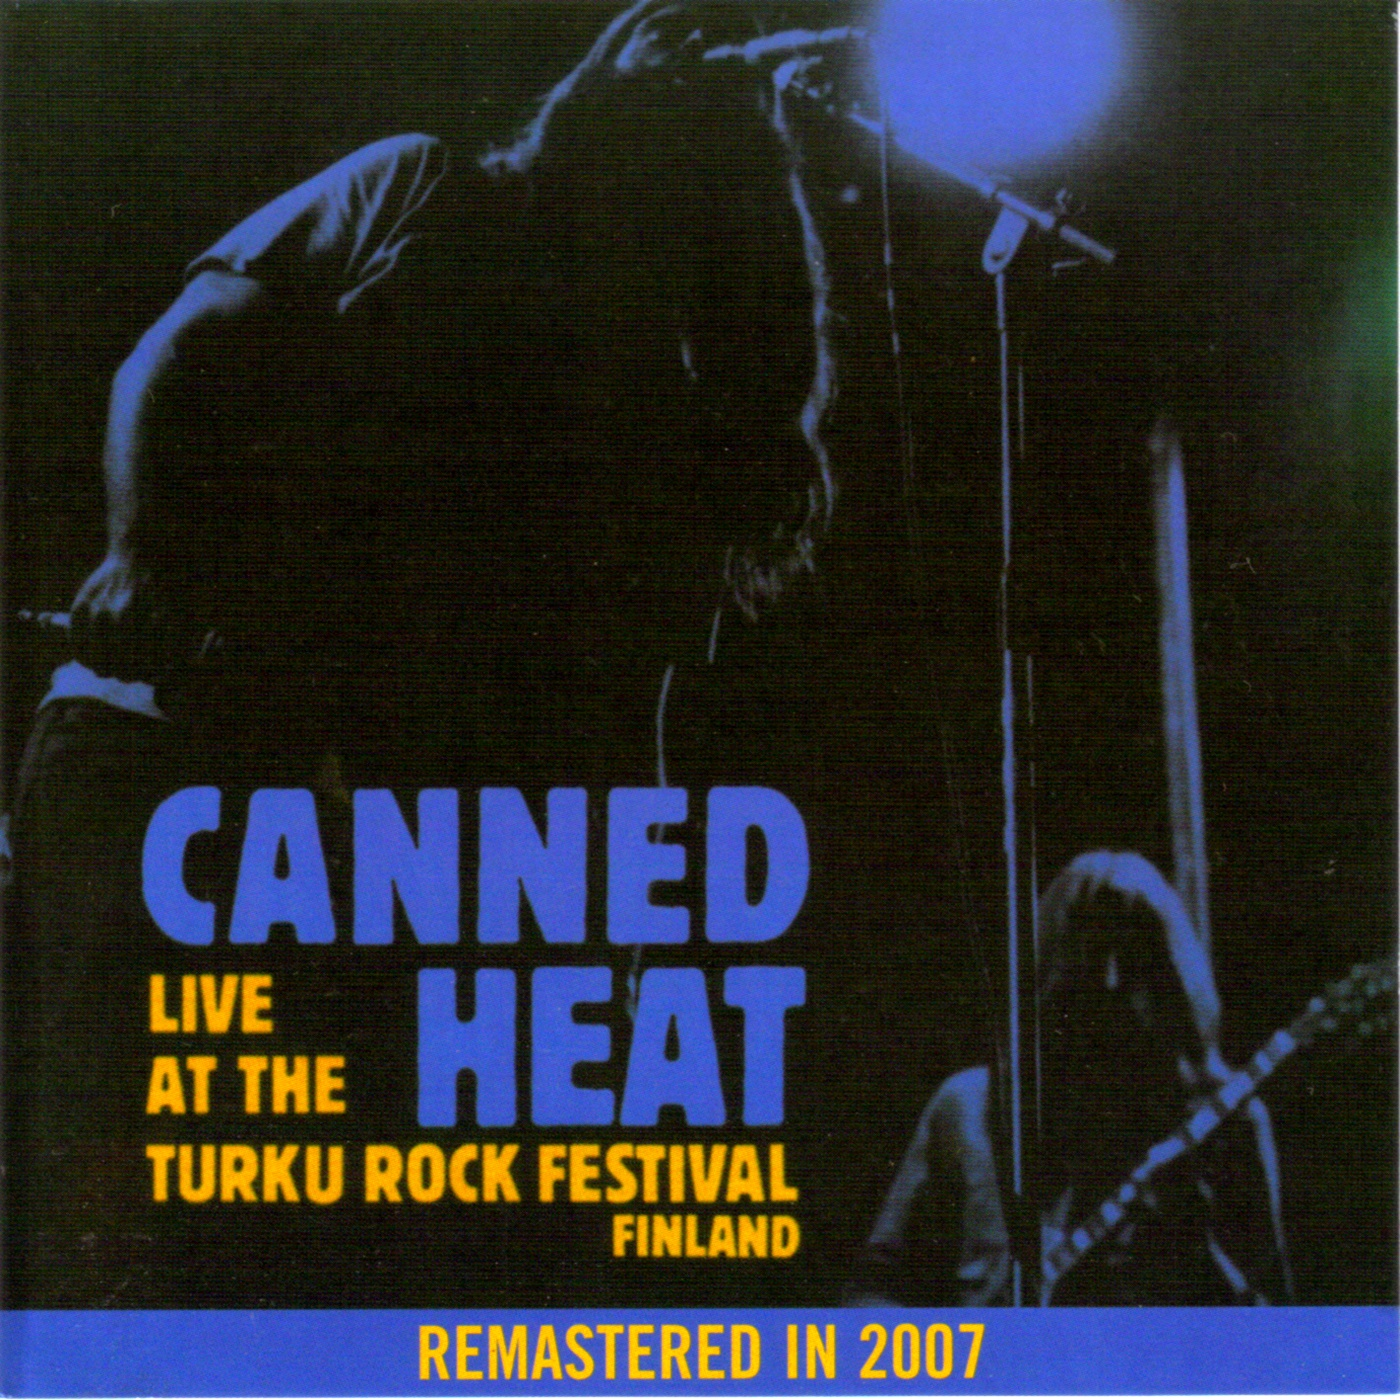 Canned Heat - Live At The Turku Rock Festival: Finland 1971 (1990)